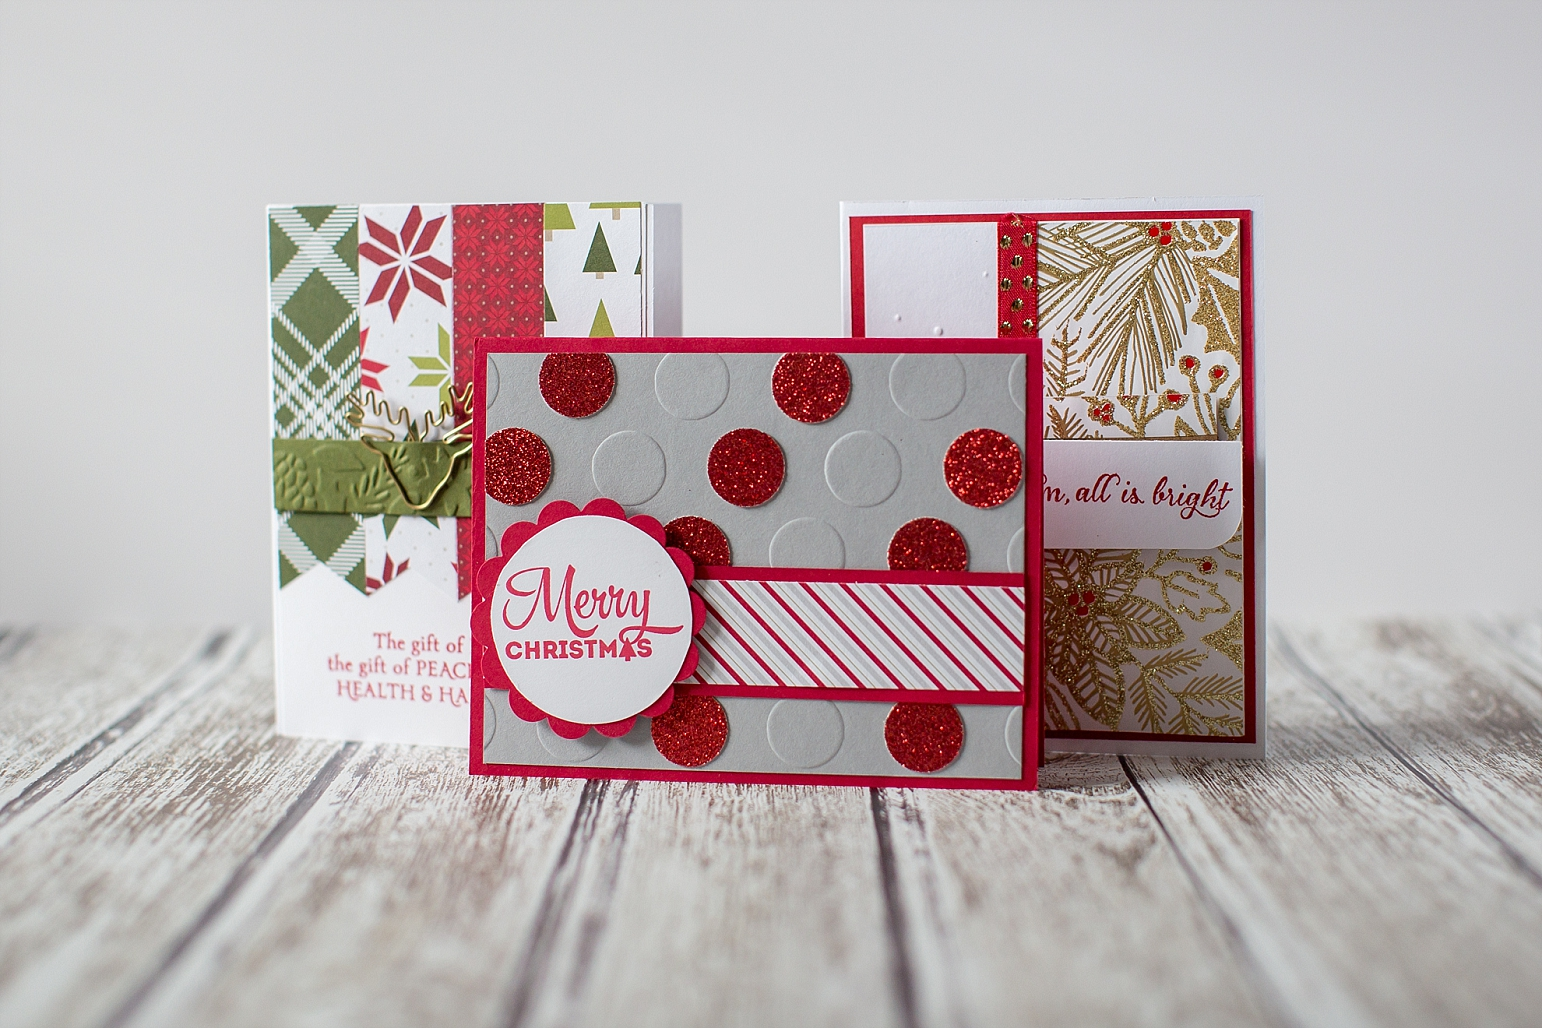 Houston Commercial Product Photography - Greeting Cards - Paper Product Photography